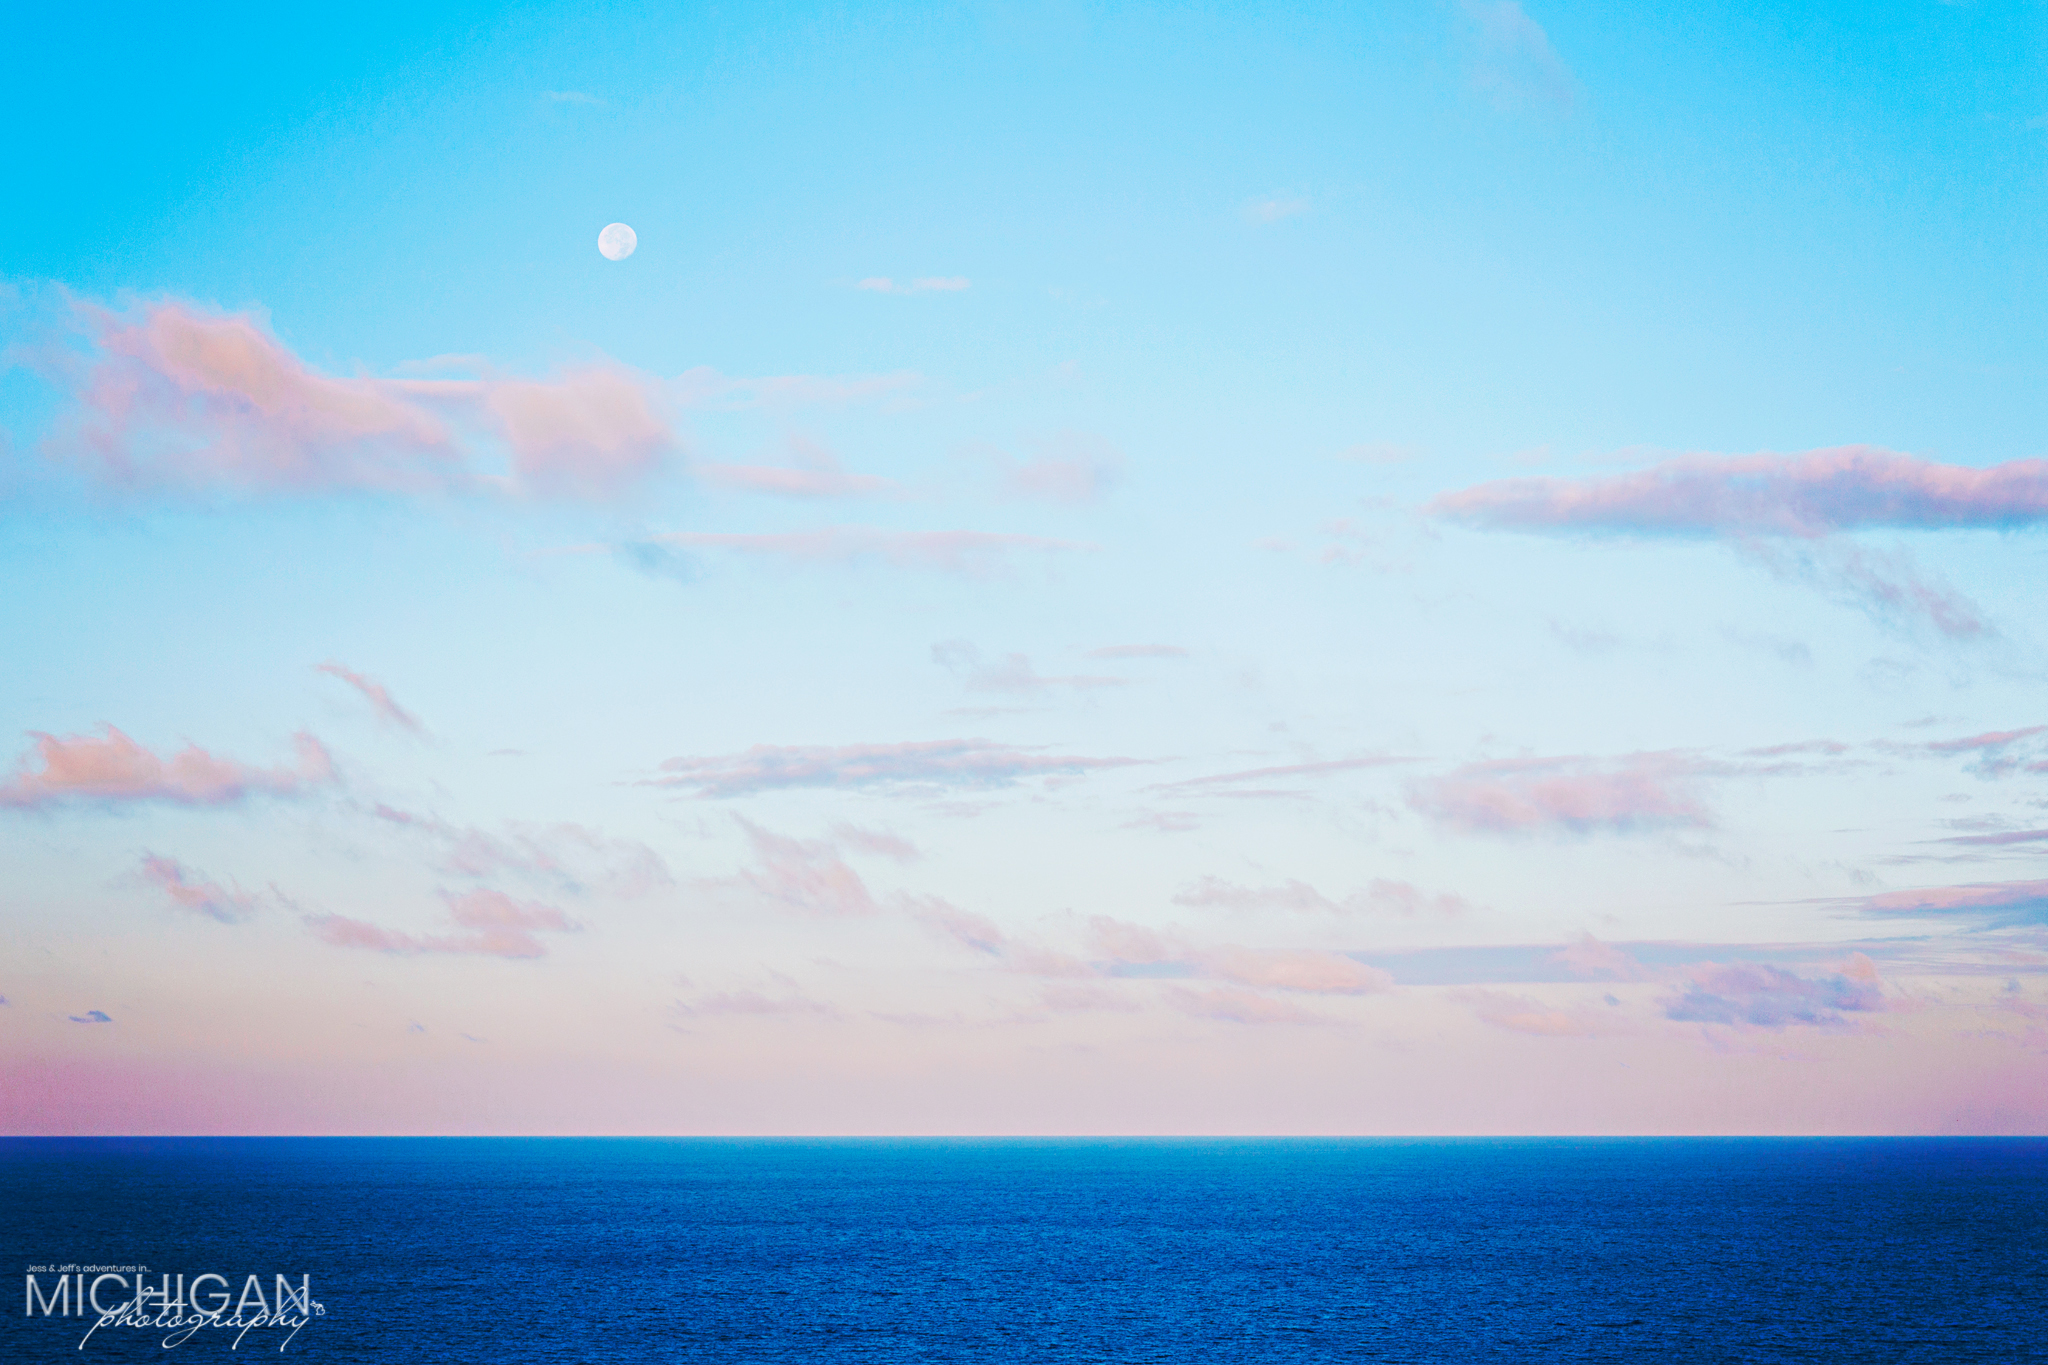 The moon and sky over Lake Michigan in Arcadia